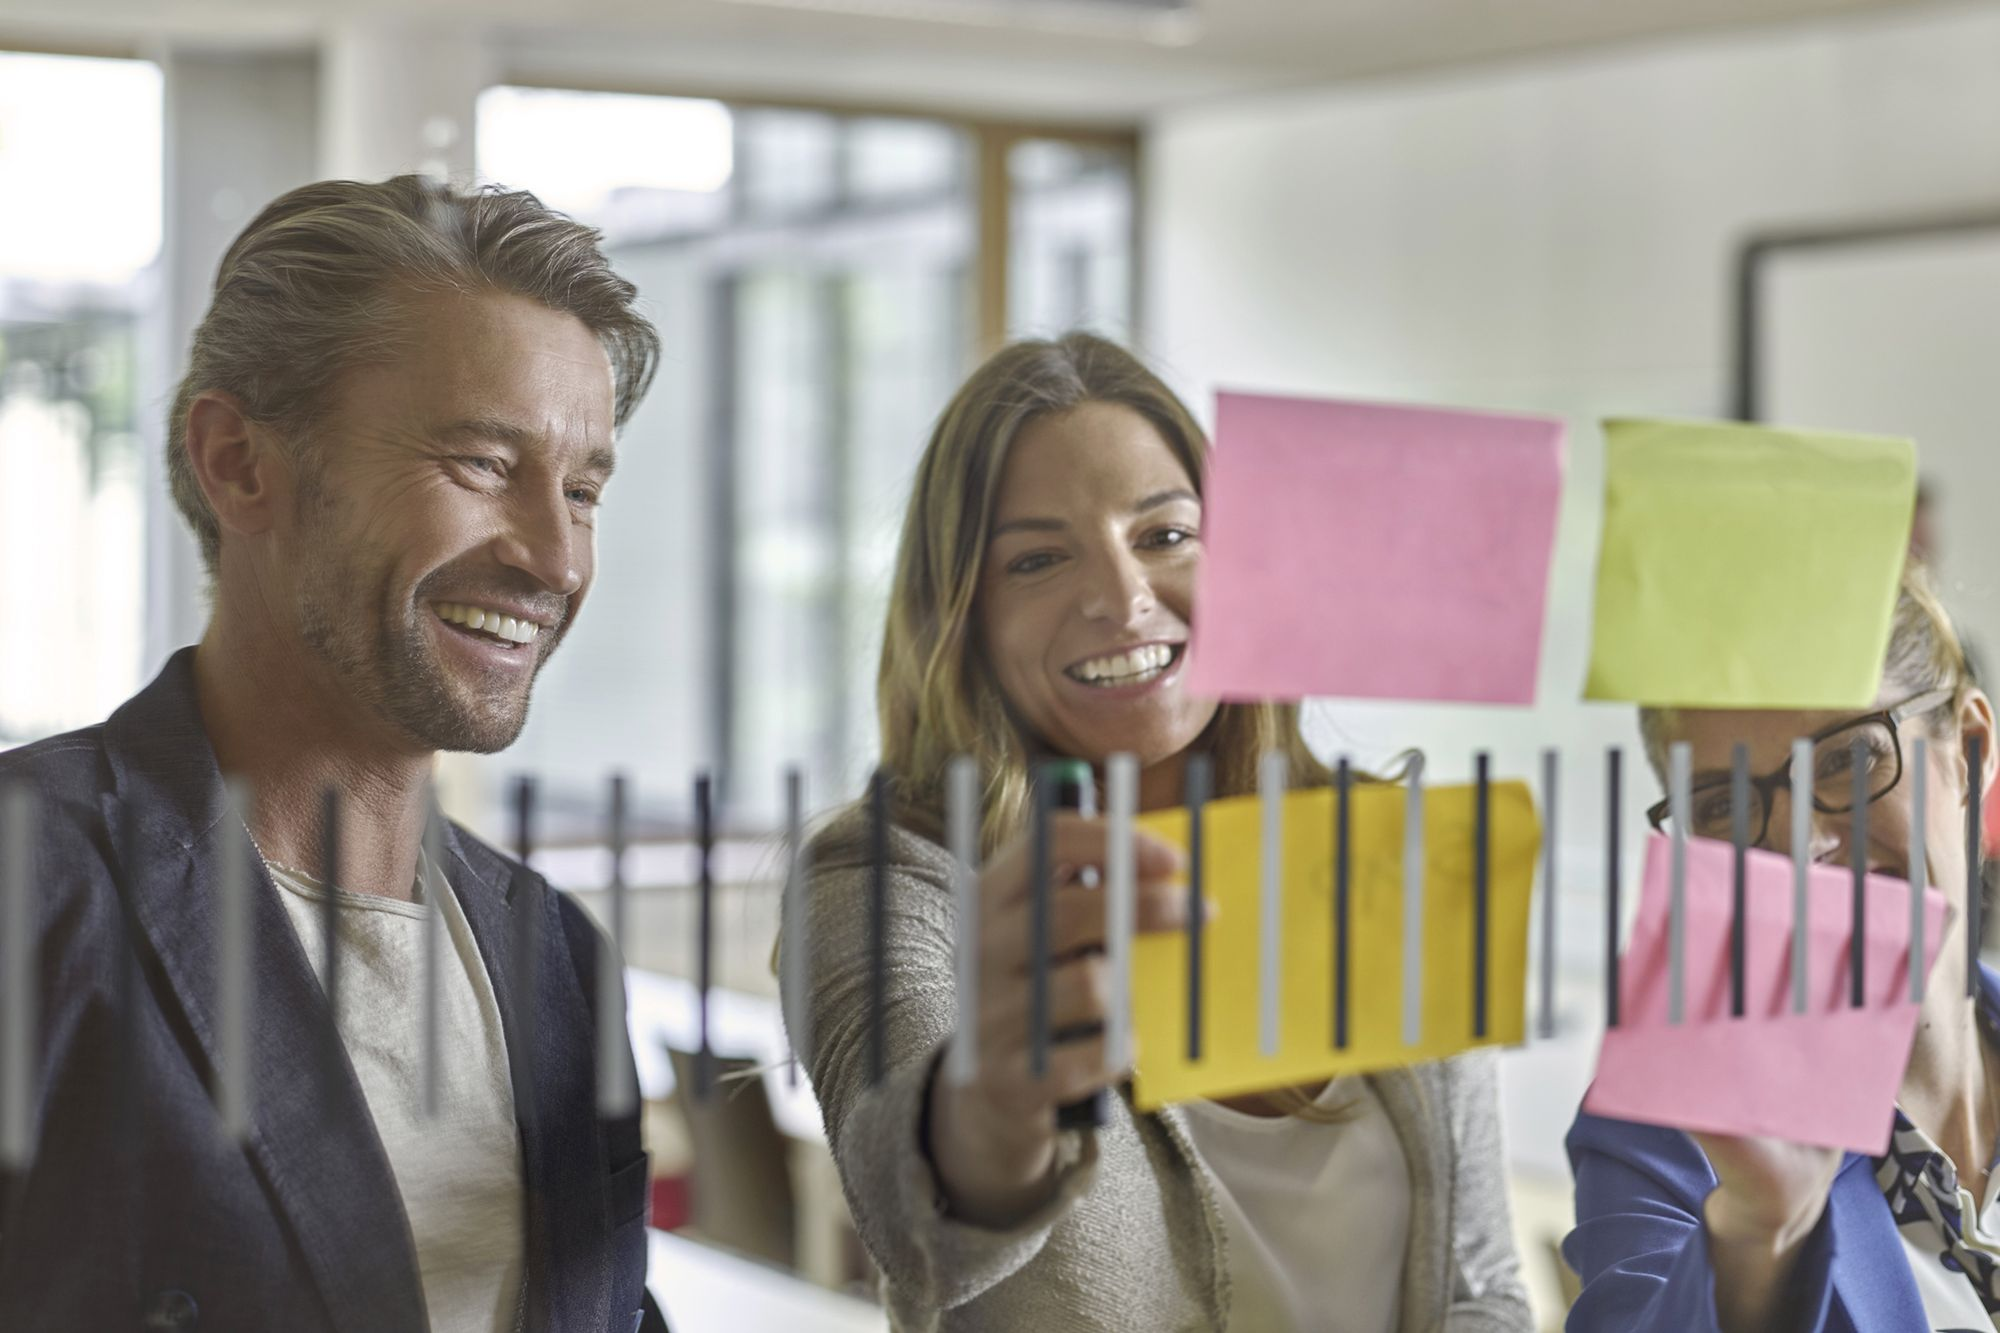 5 Simple Ways to Identify Business Ideas That Could (Really) Change the World